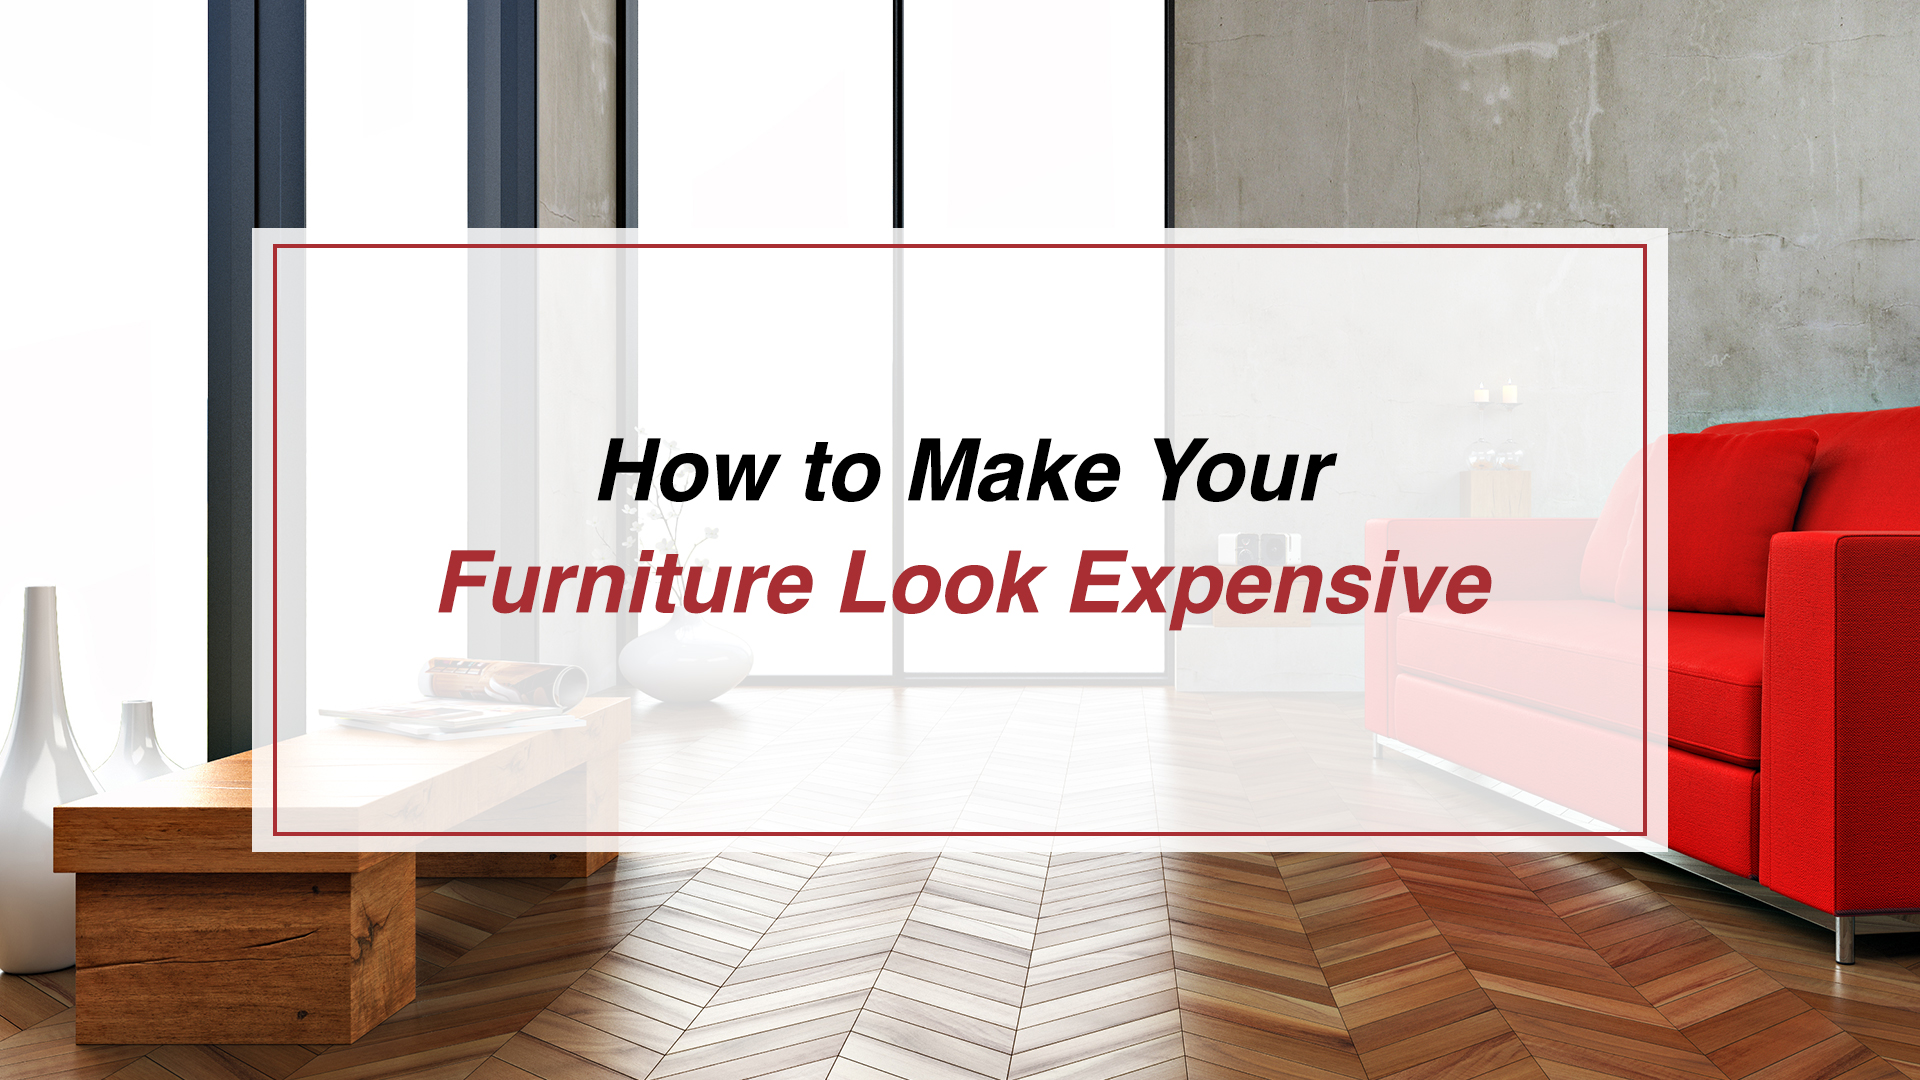 How to Make Your Furniture Look Expensive